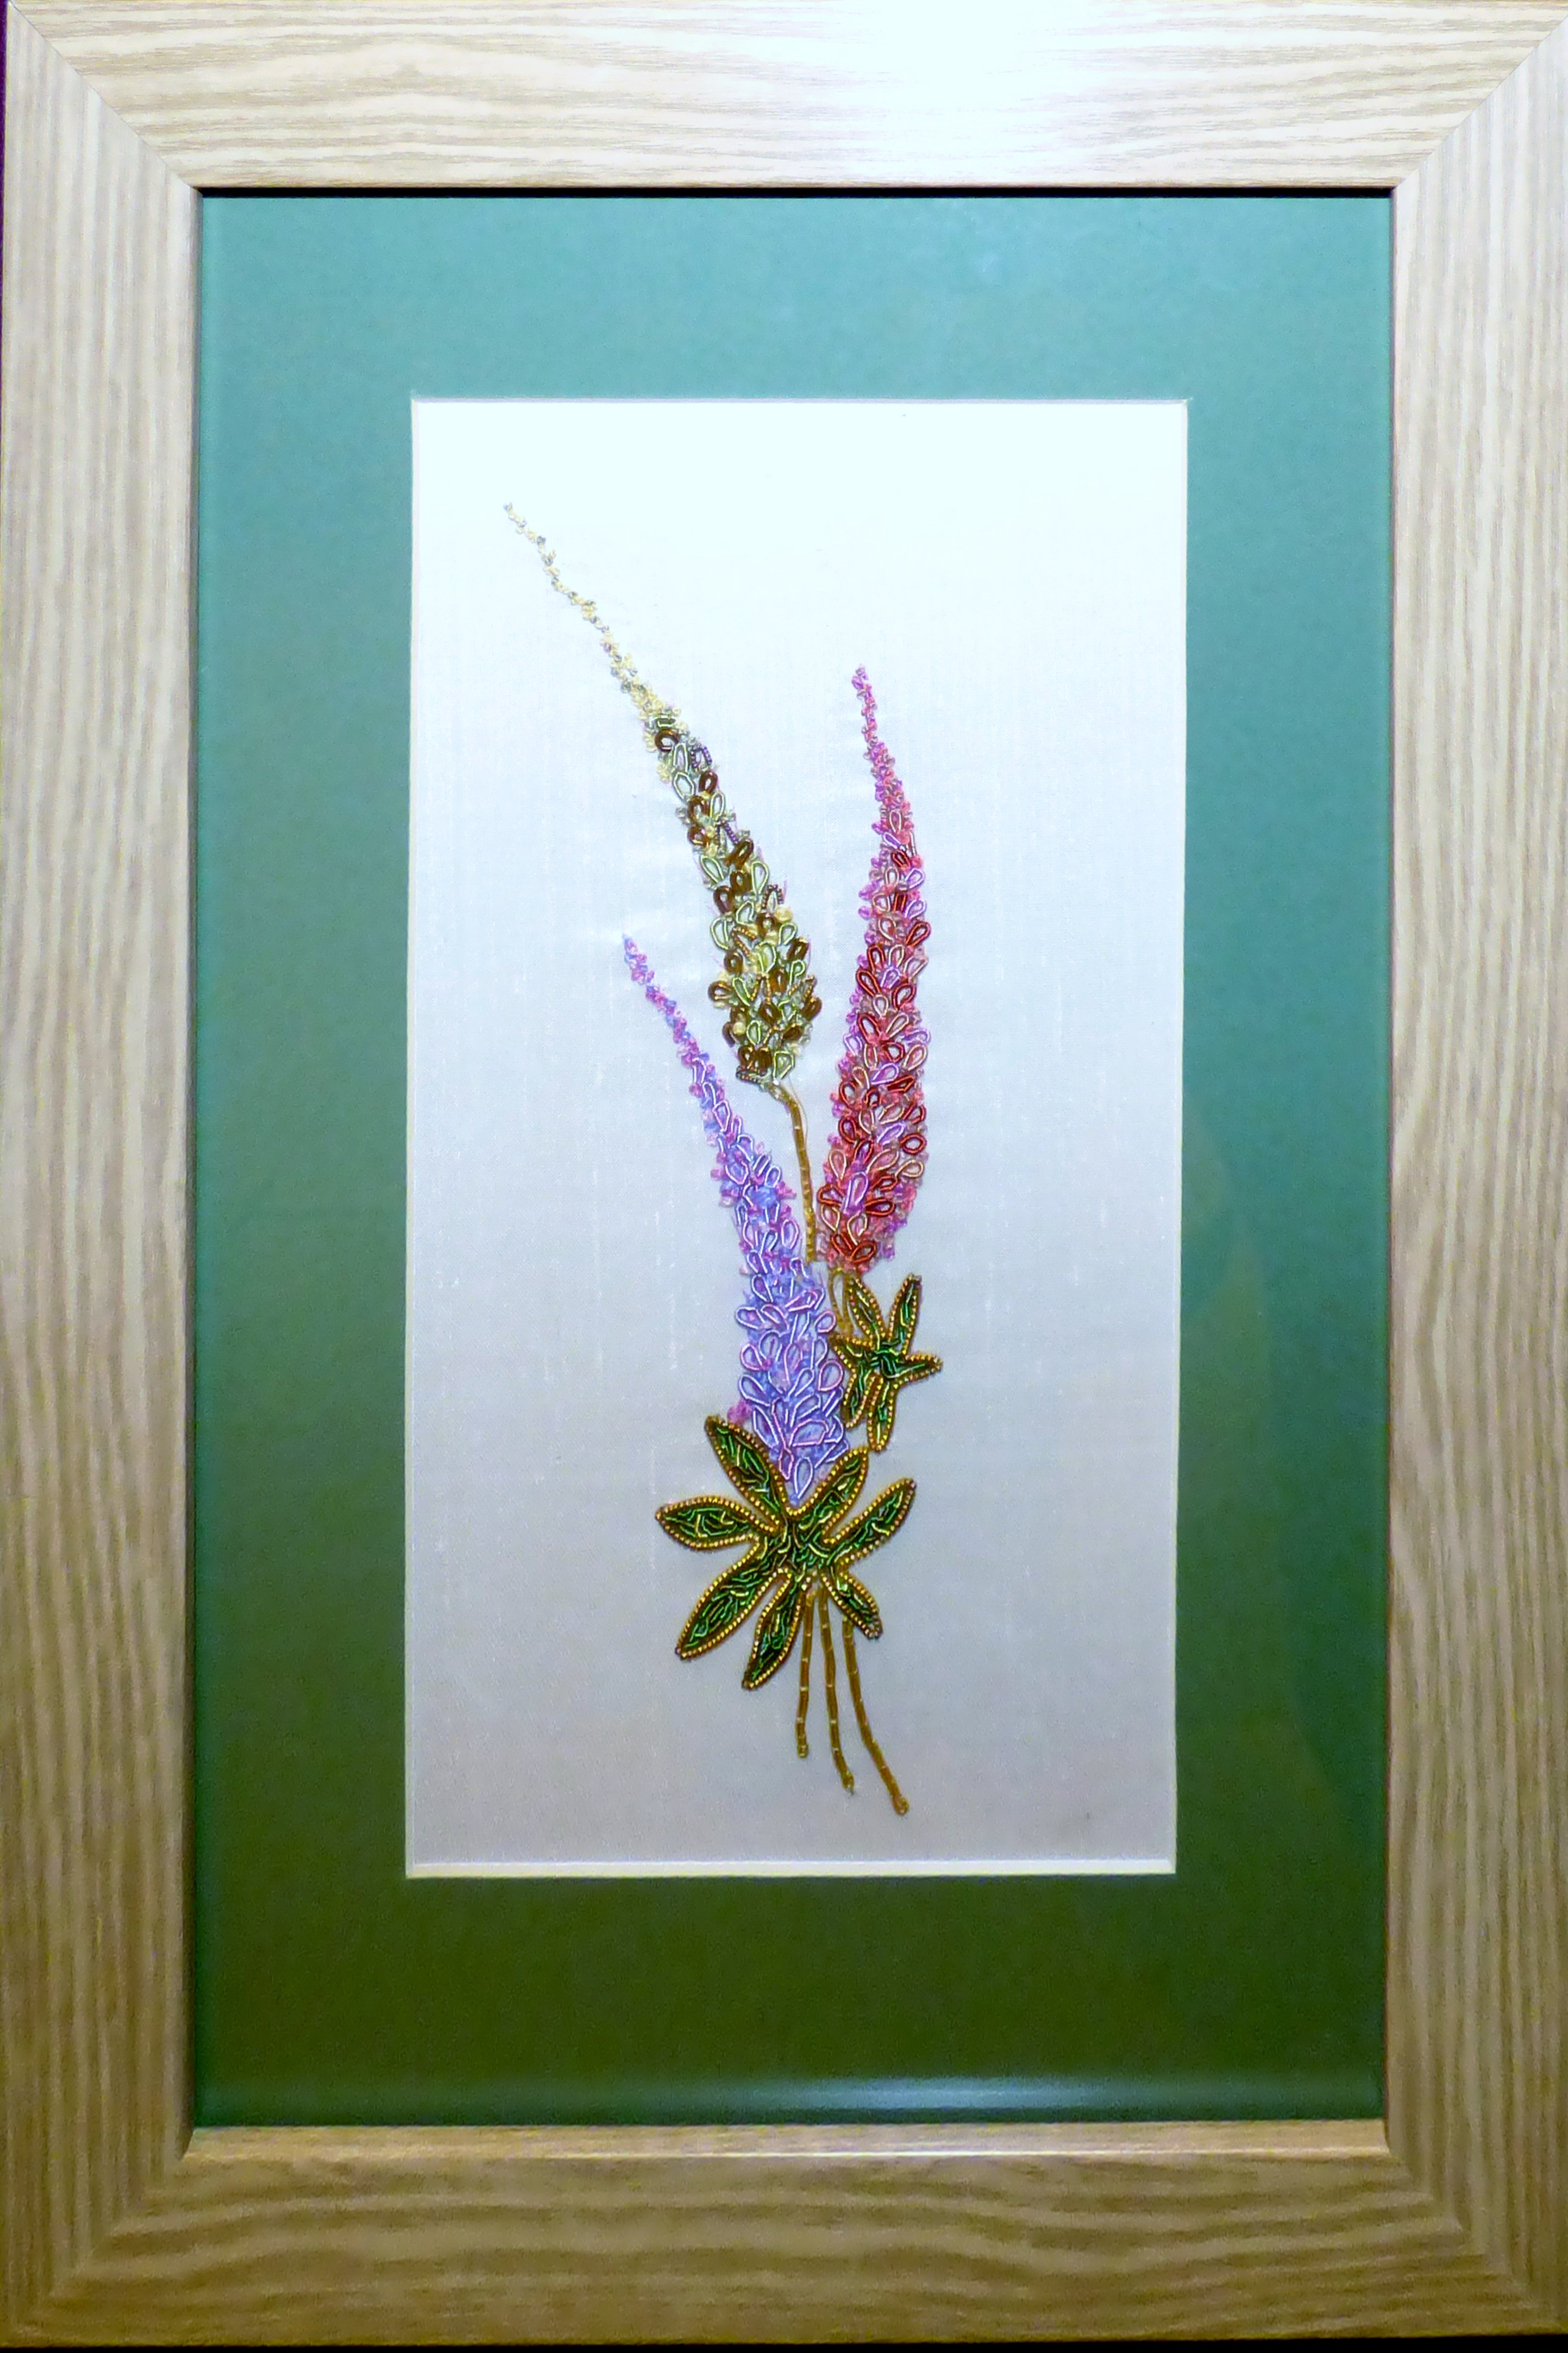 LUPINS by Linda Sowler, hand embroidery, Endeavour exhibition, Liverpool Cathedral, Sept 2018